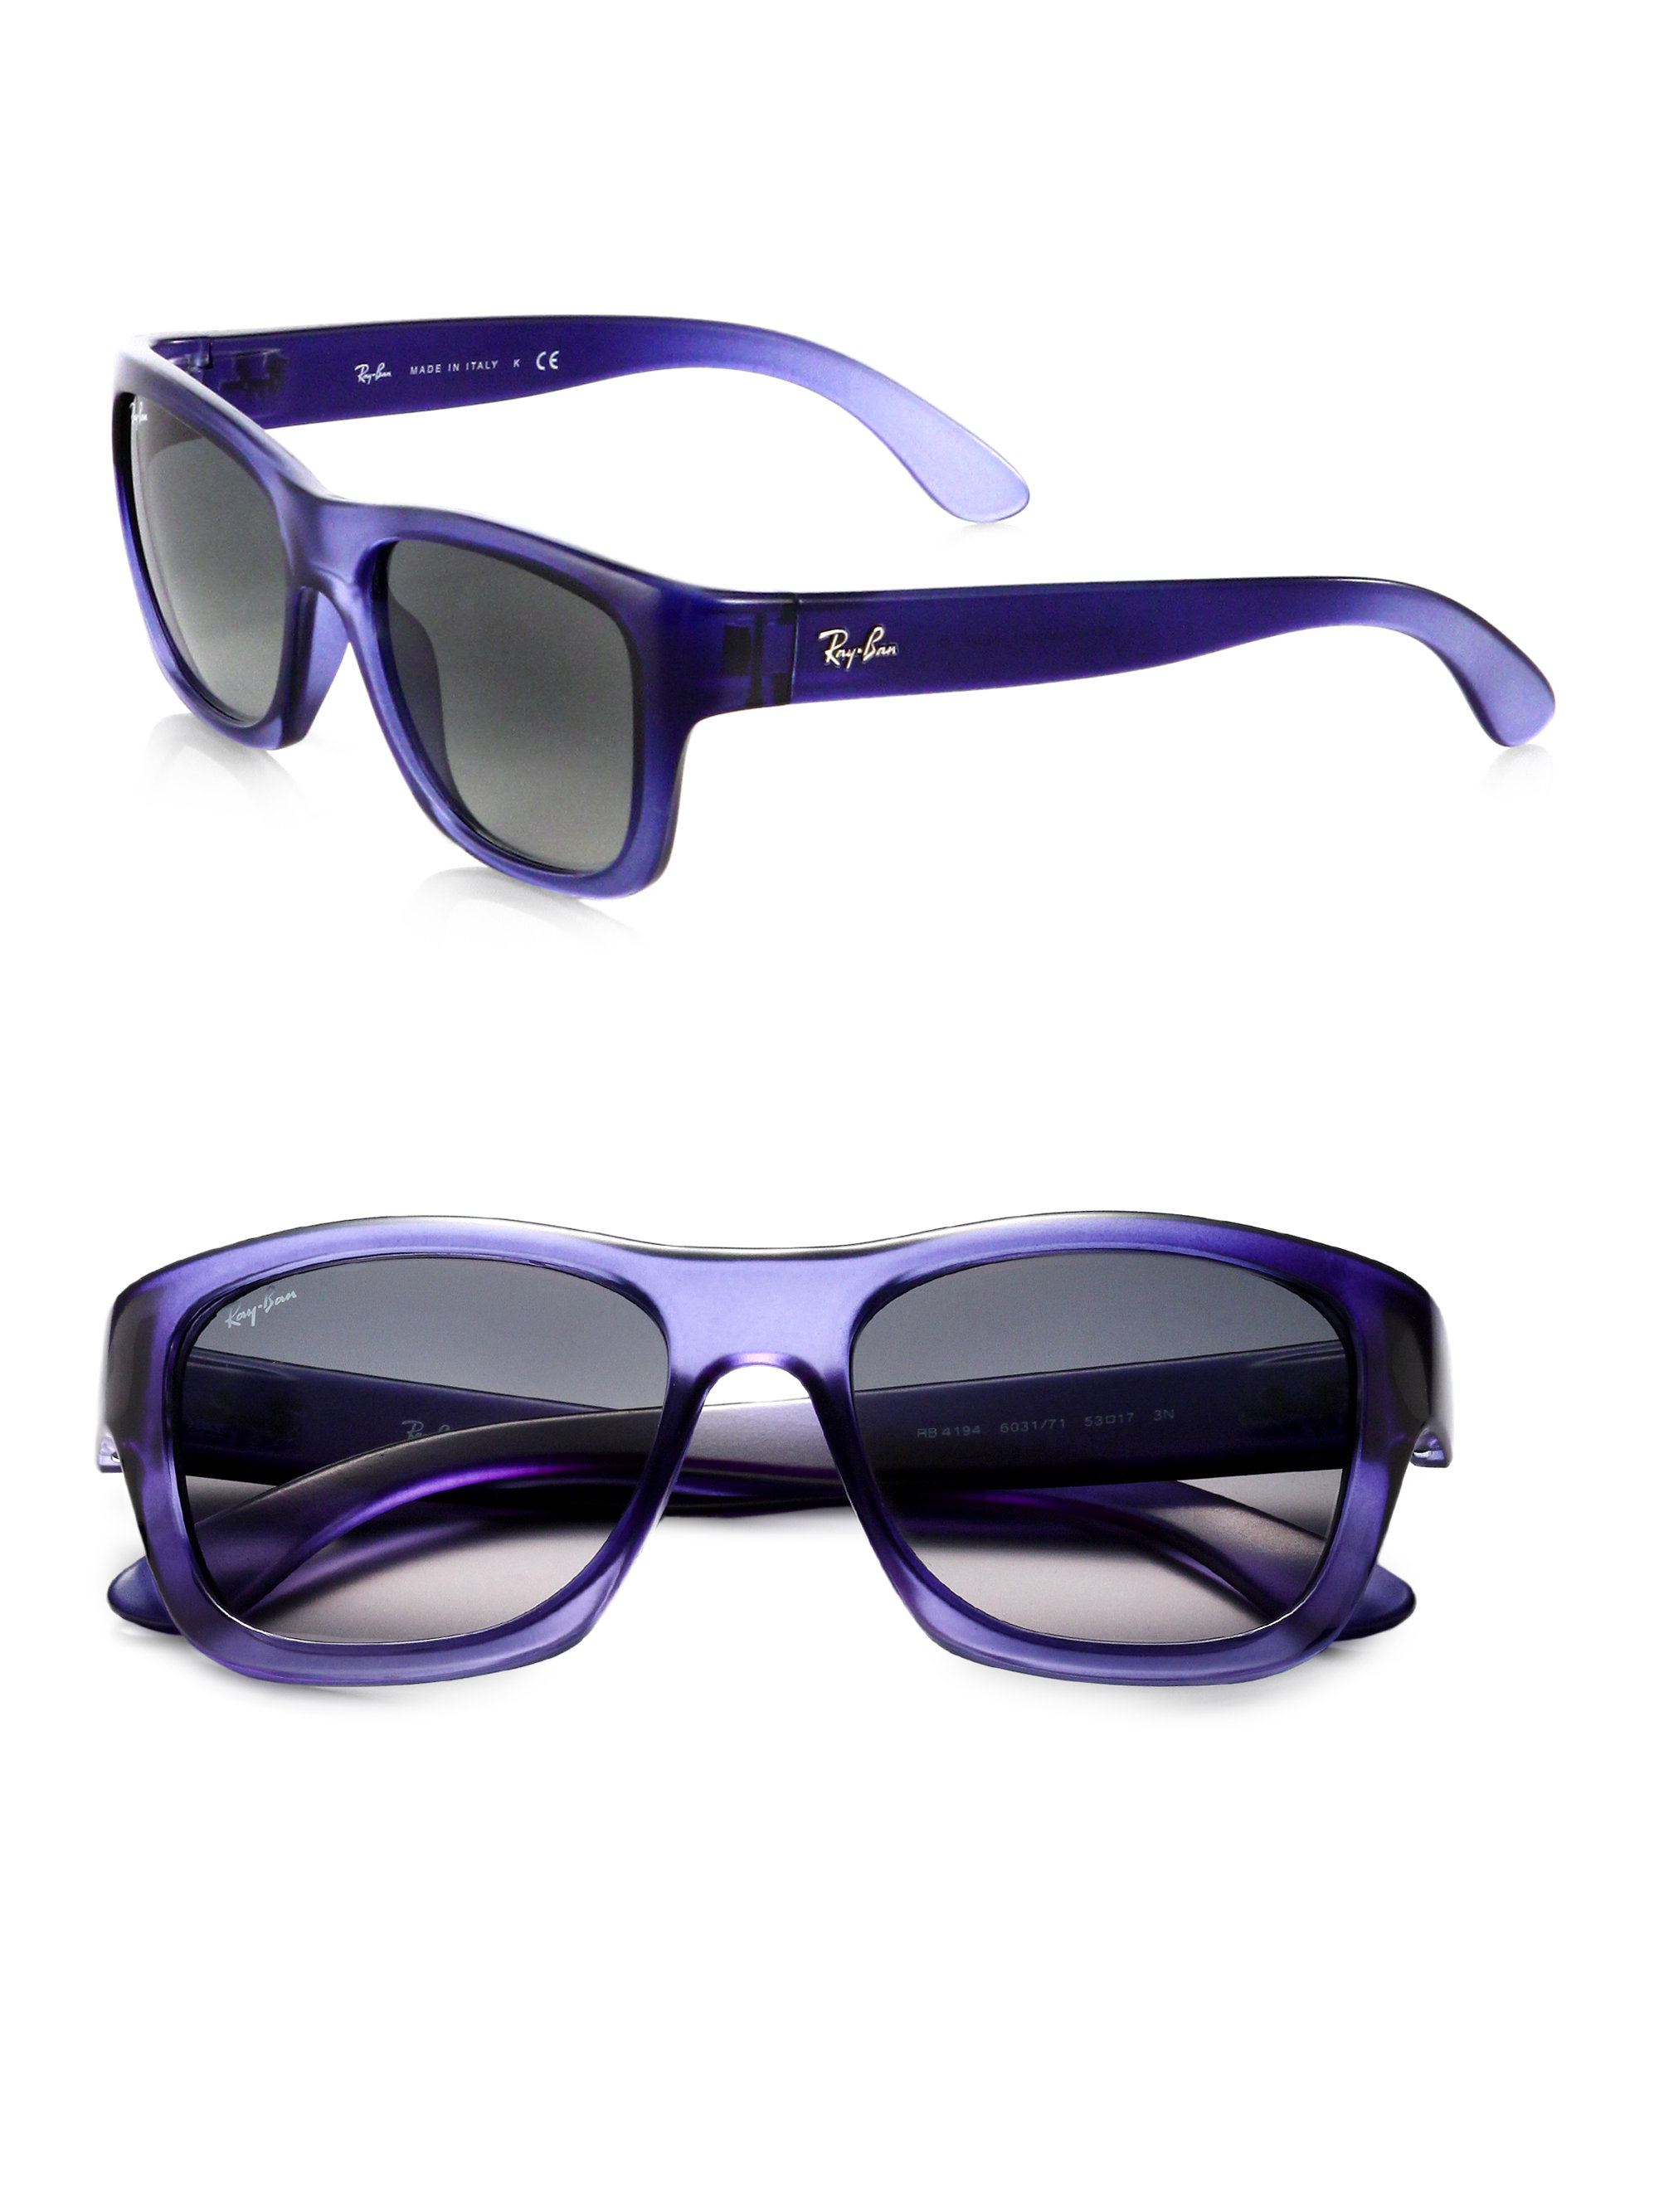 4649eca2fe Lyst - Ray-Ban Square Glam Acetate Sunglasses in Blue for Men